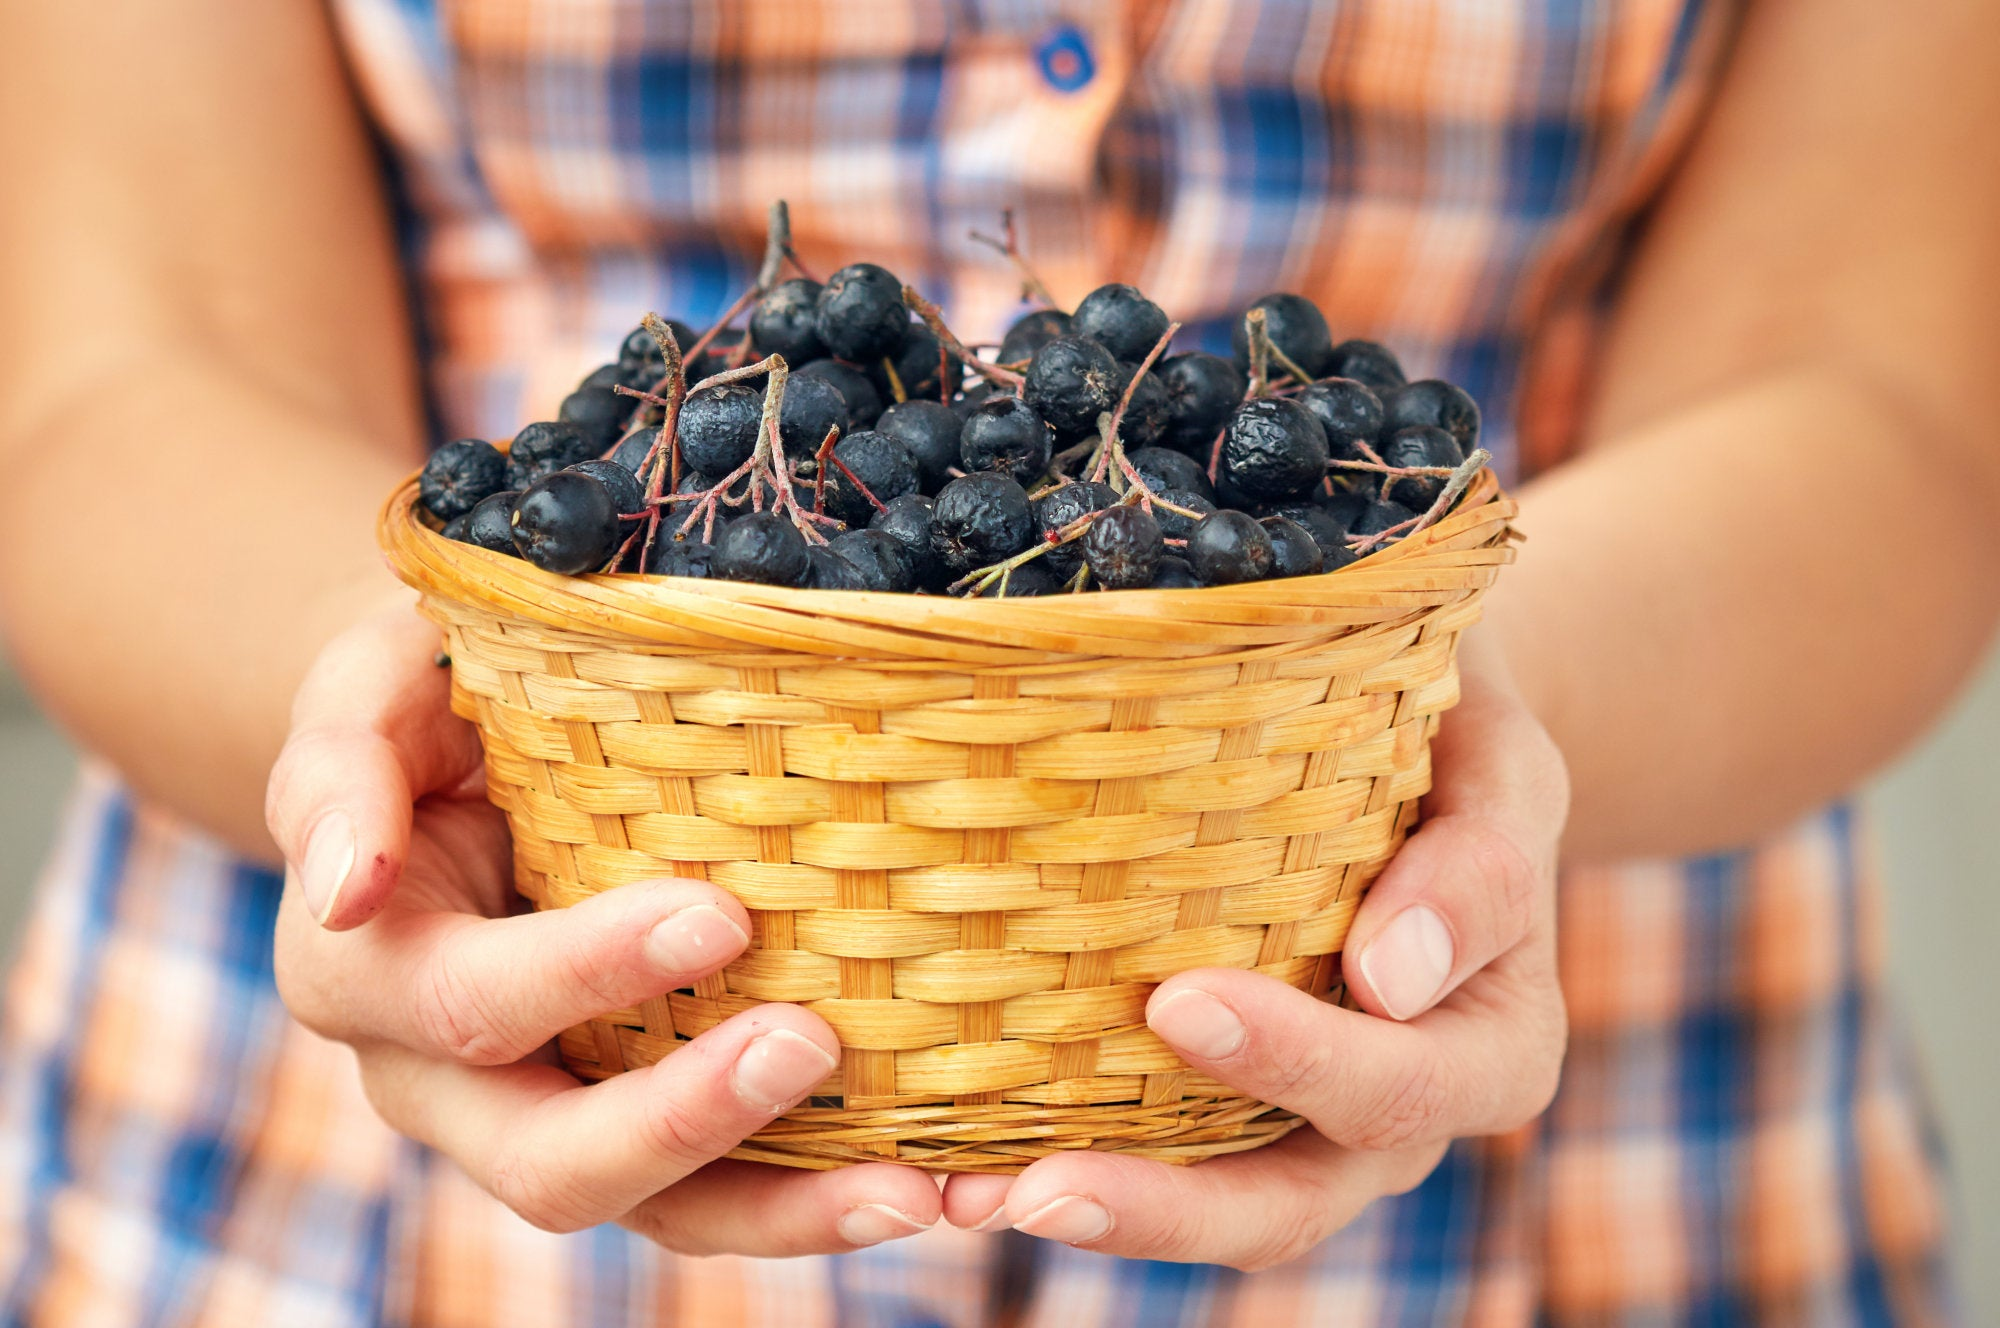 Recognition of Siberian Aronia as a source of health